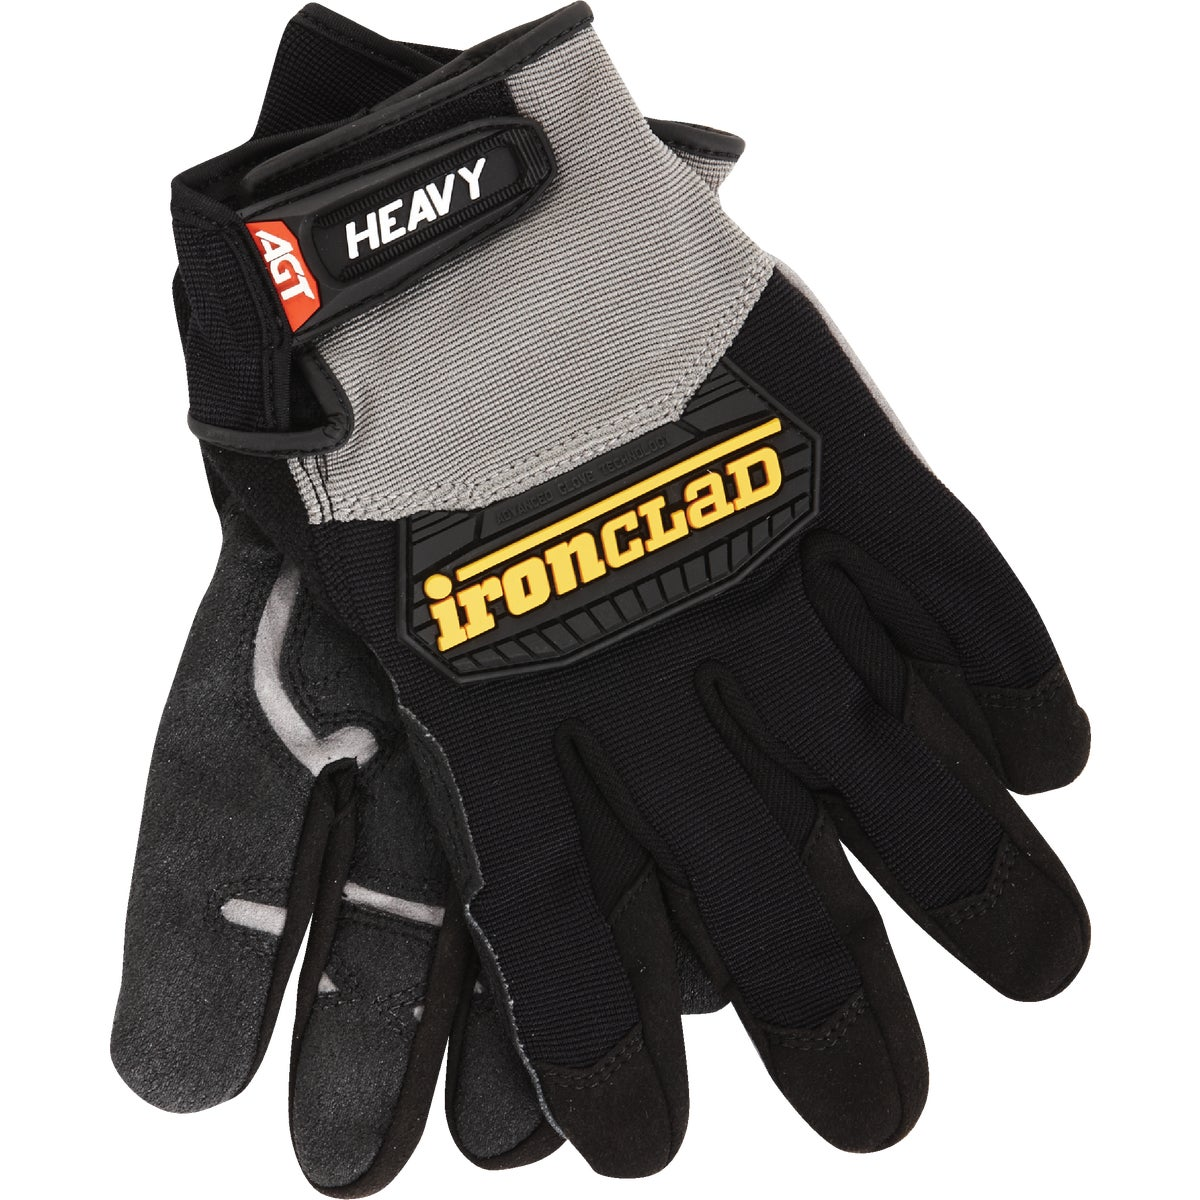 LRG HEAVY UTILITY GLOVE - HUG-04-L by Ironclad Performance